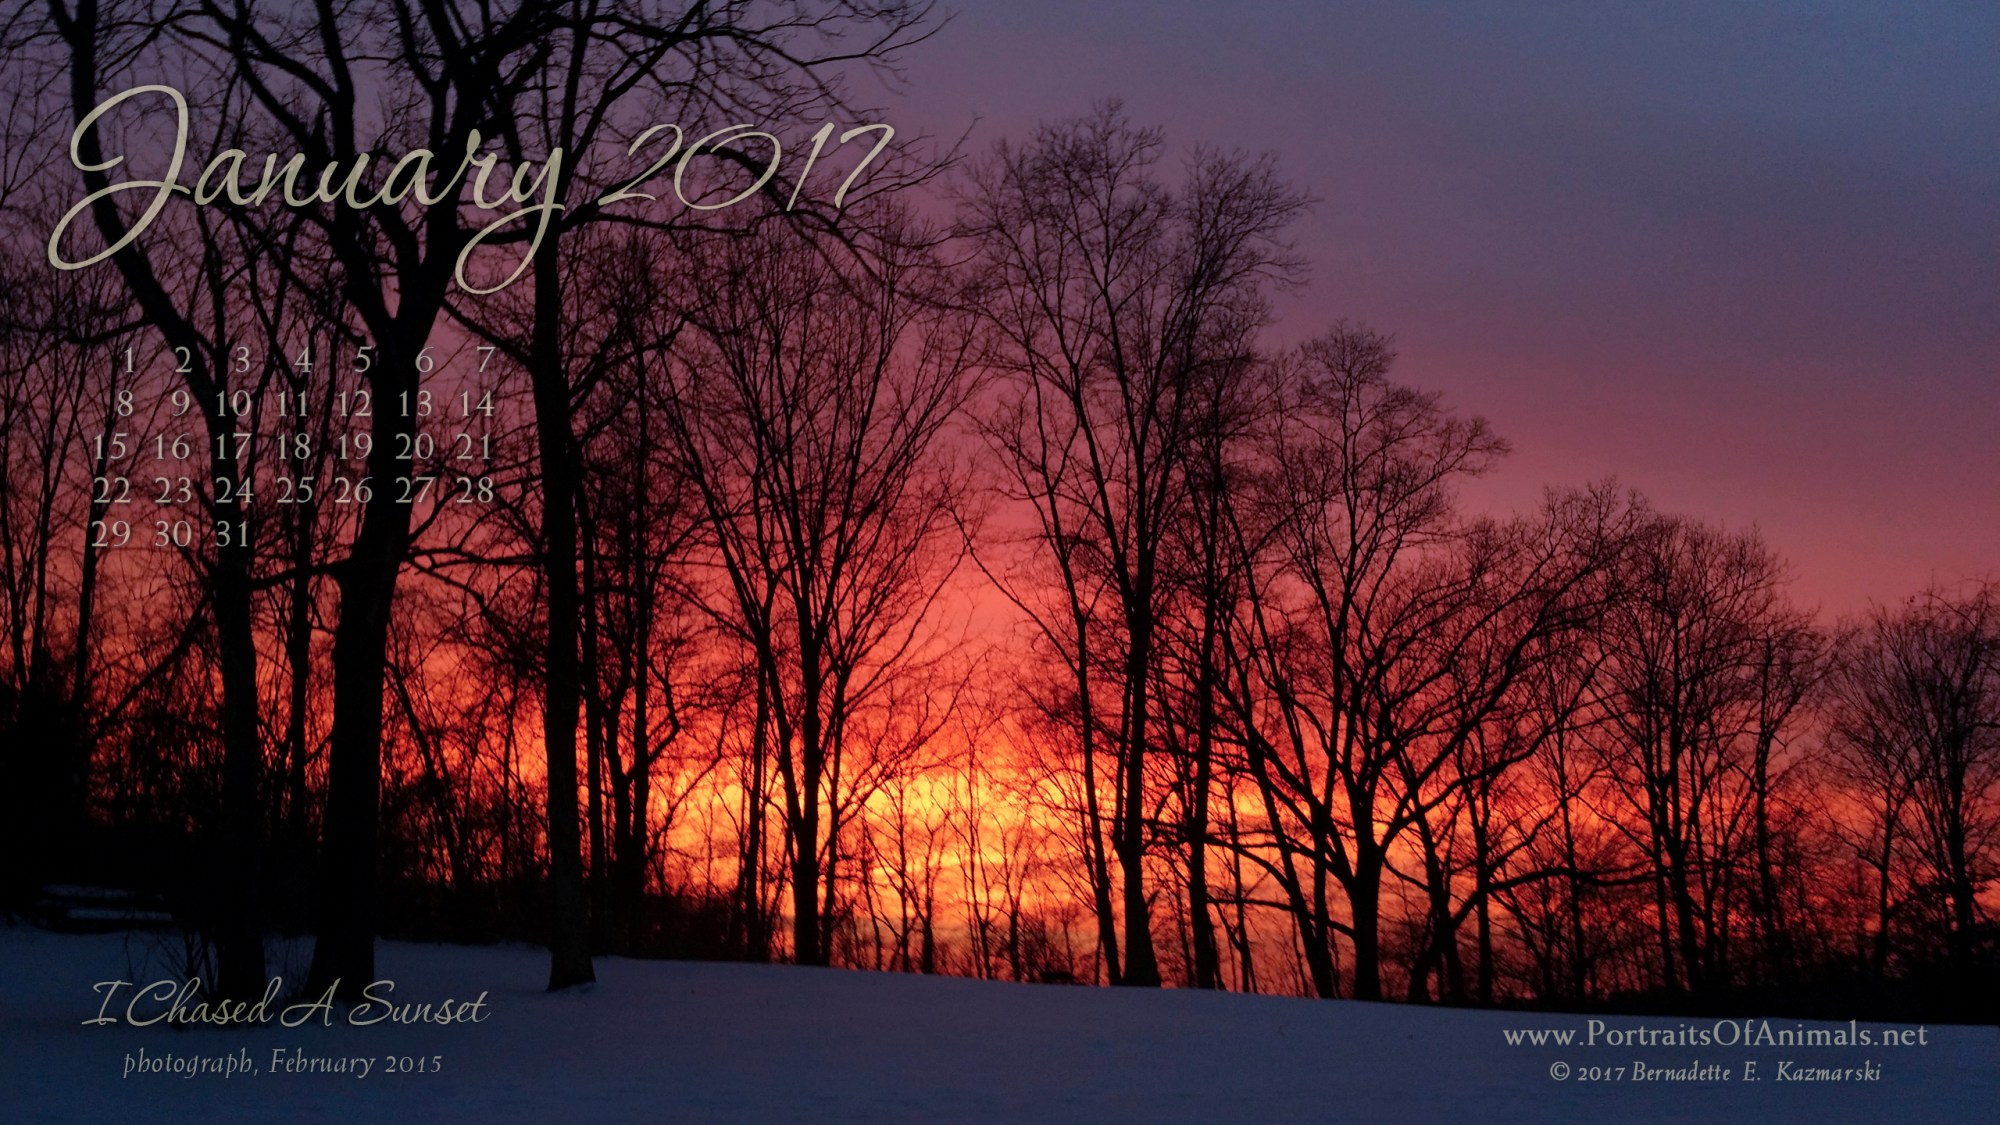 """I Chased a Sunset"" desktop calendar 2560 x 1440 for HD and wide screens."